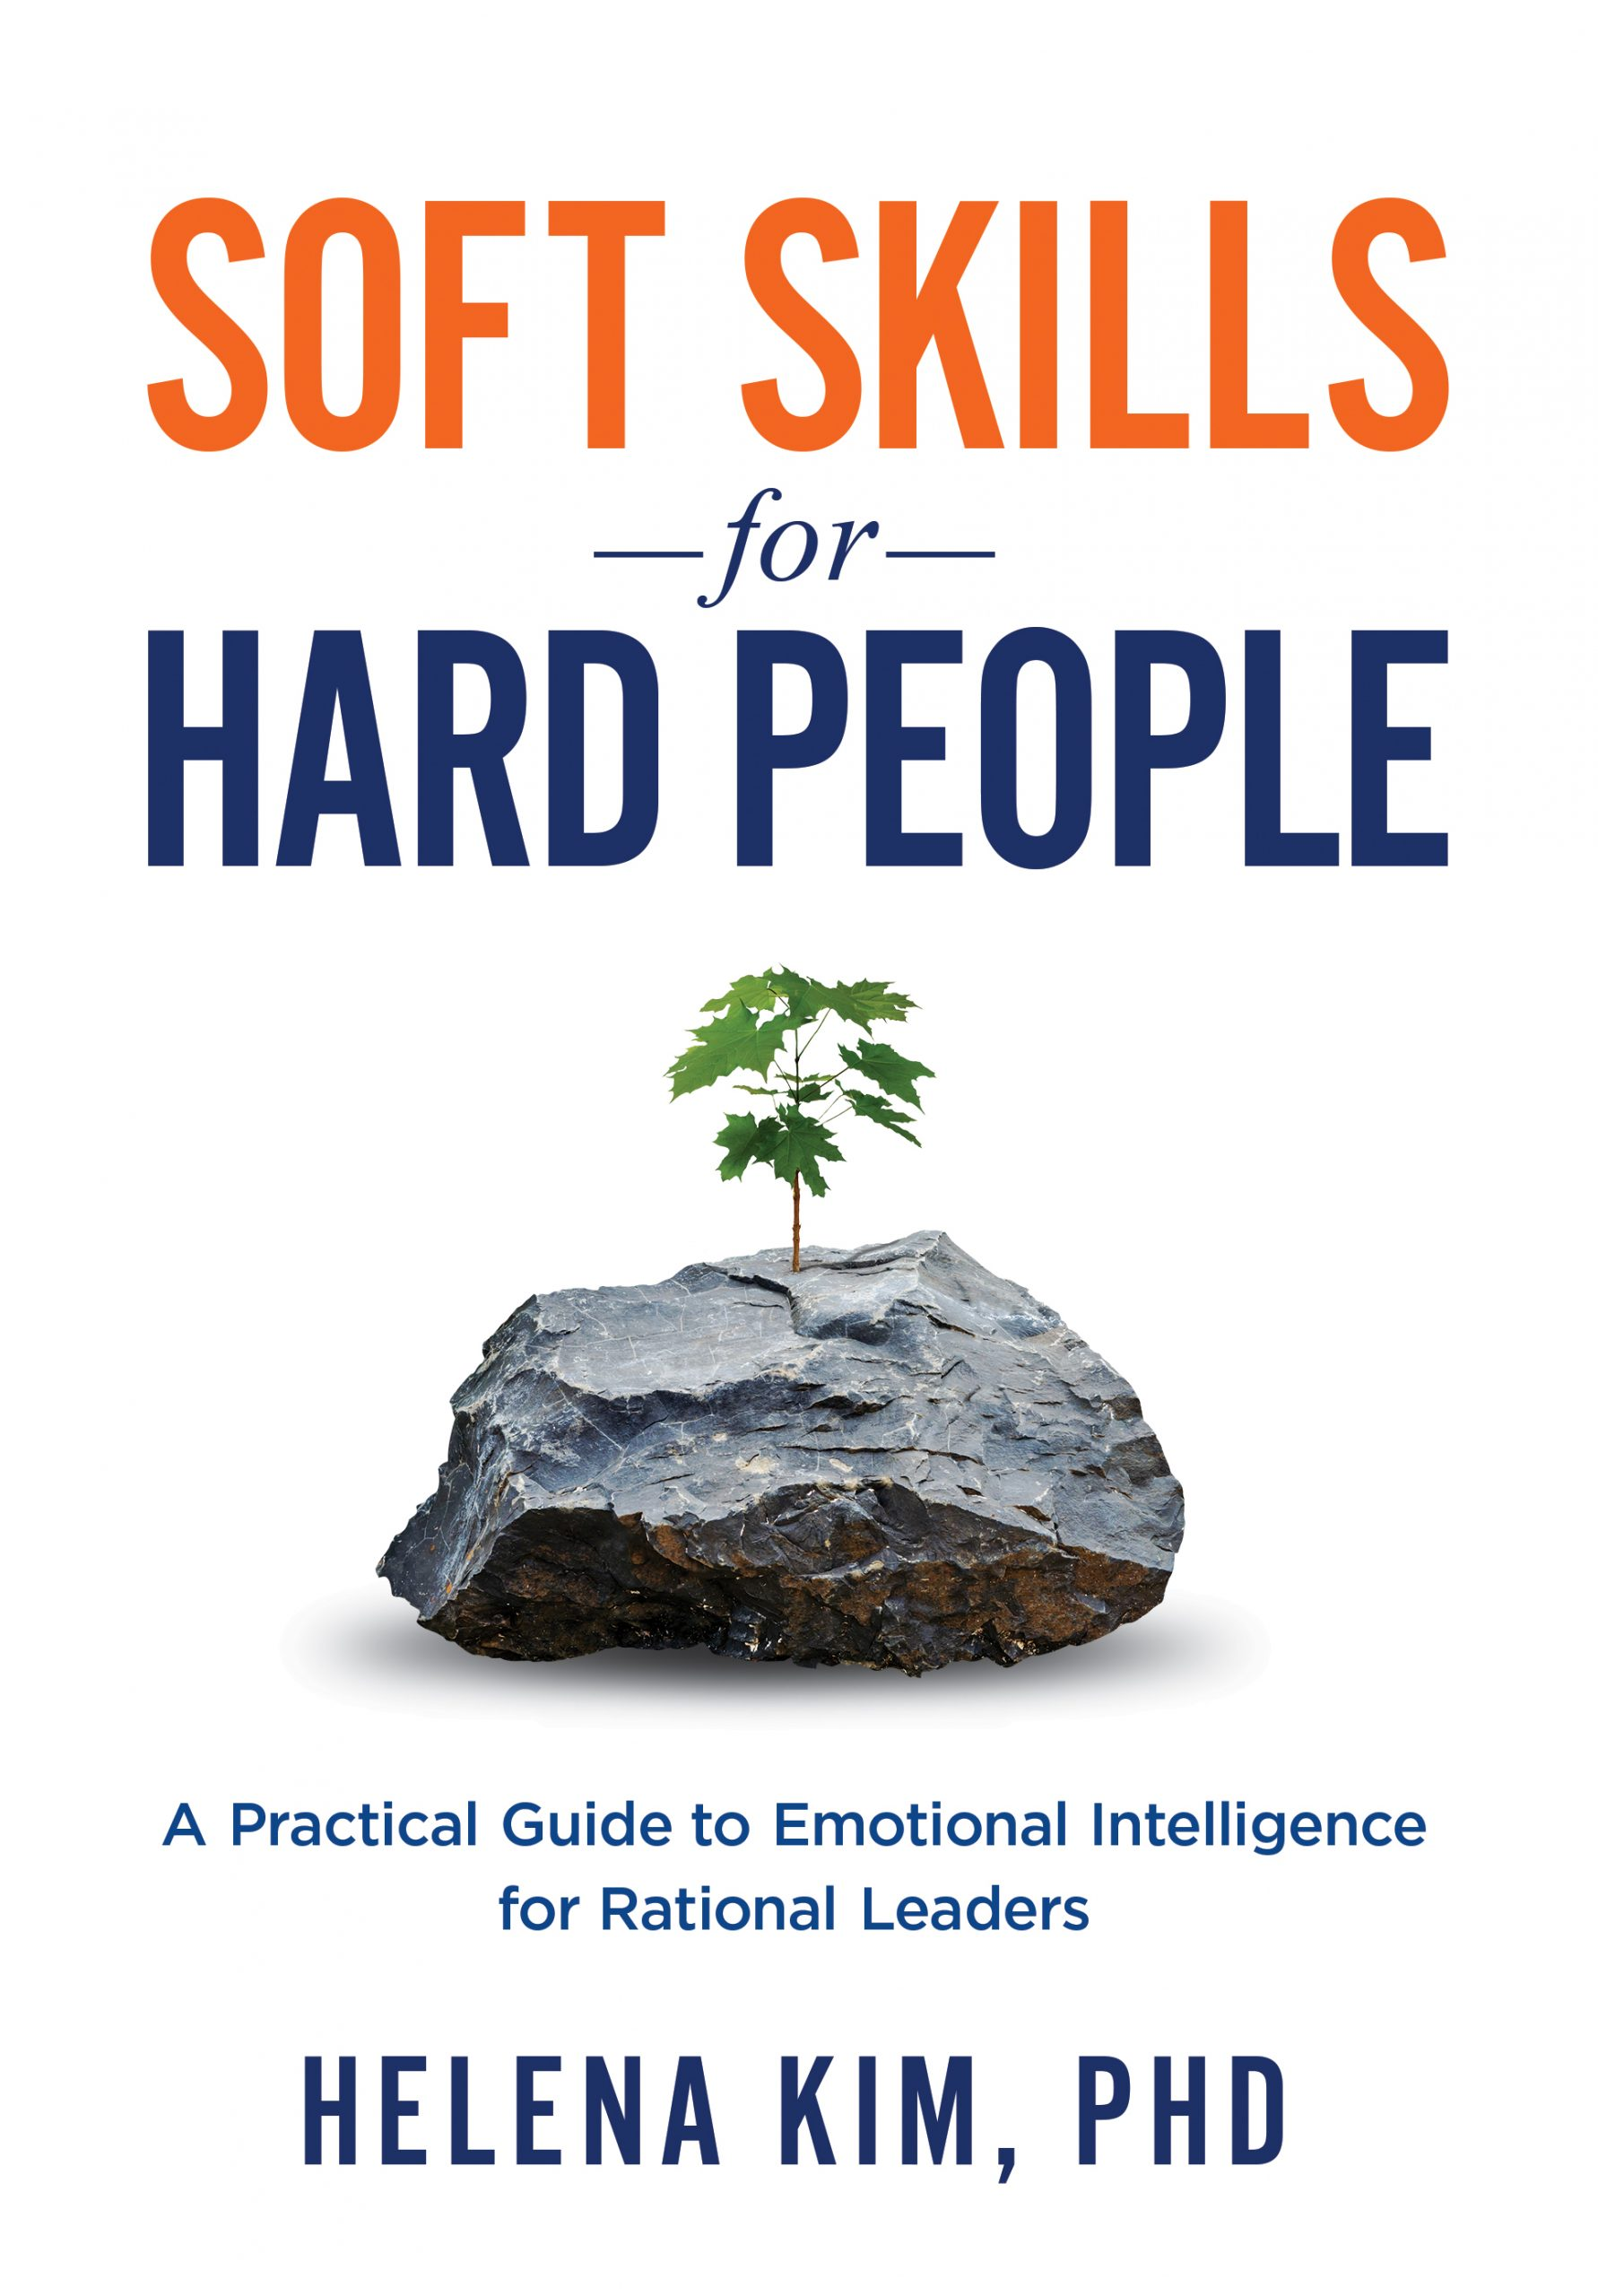 Soft Skills for Hard People by Helena Kim